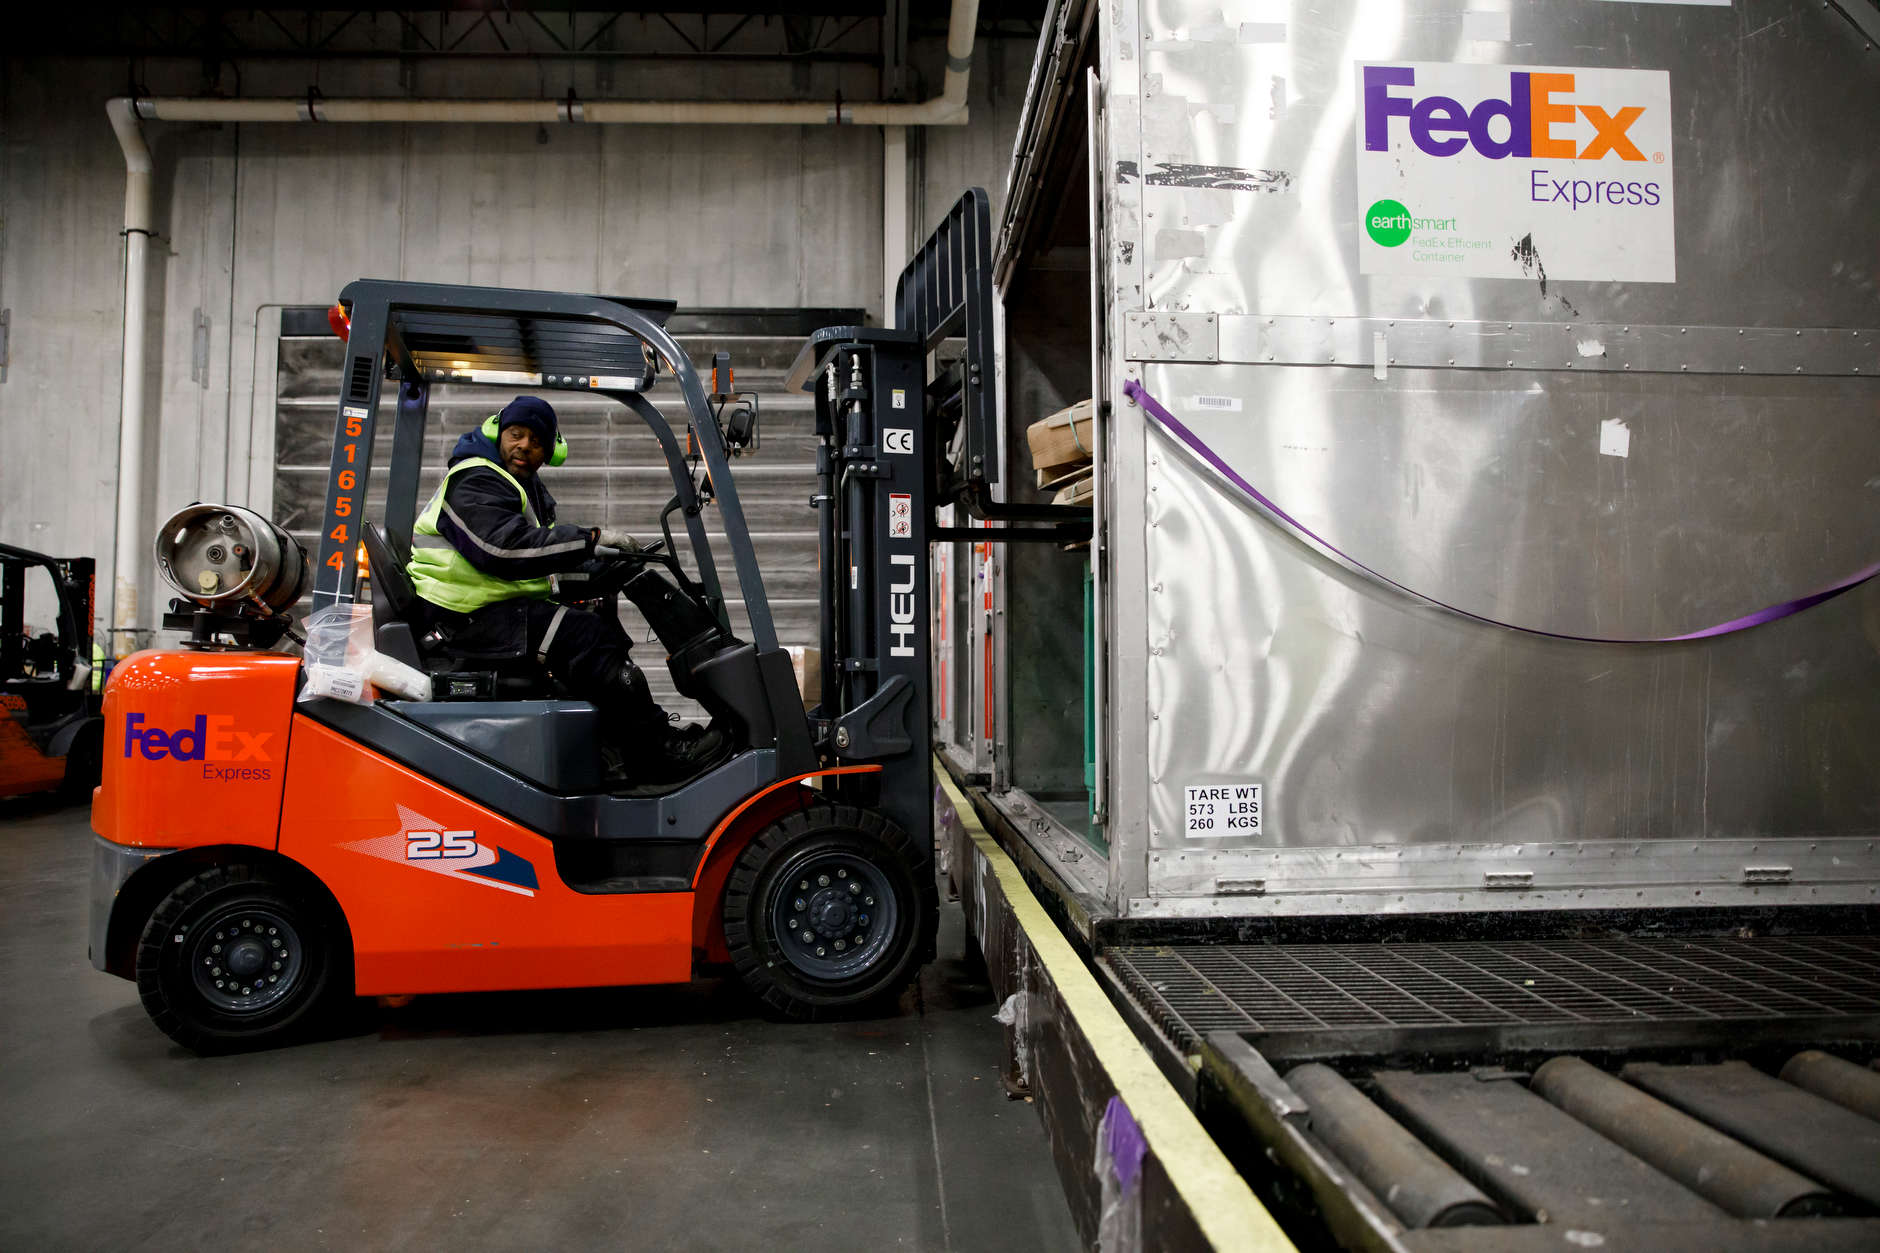 James Wilson, a FedEx material handler, carefully maneuvers a pallet of packages into a unit load device (ULD) using a forklift at the FedEx Express Hub in Indianapolis in the early morning hours of Wednesday, Feb. 27, 2019. (James Brosher for The Wall Street Journal)